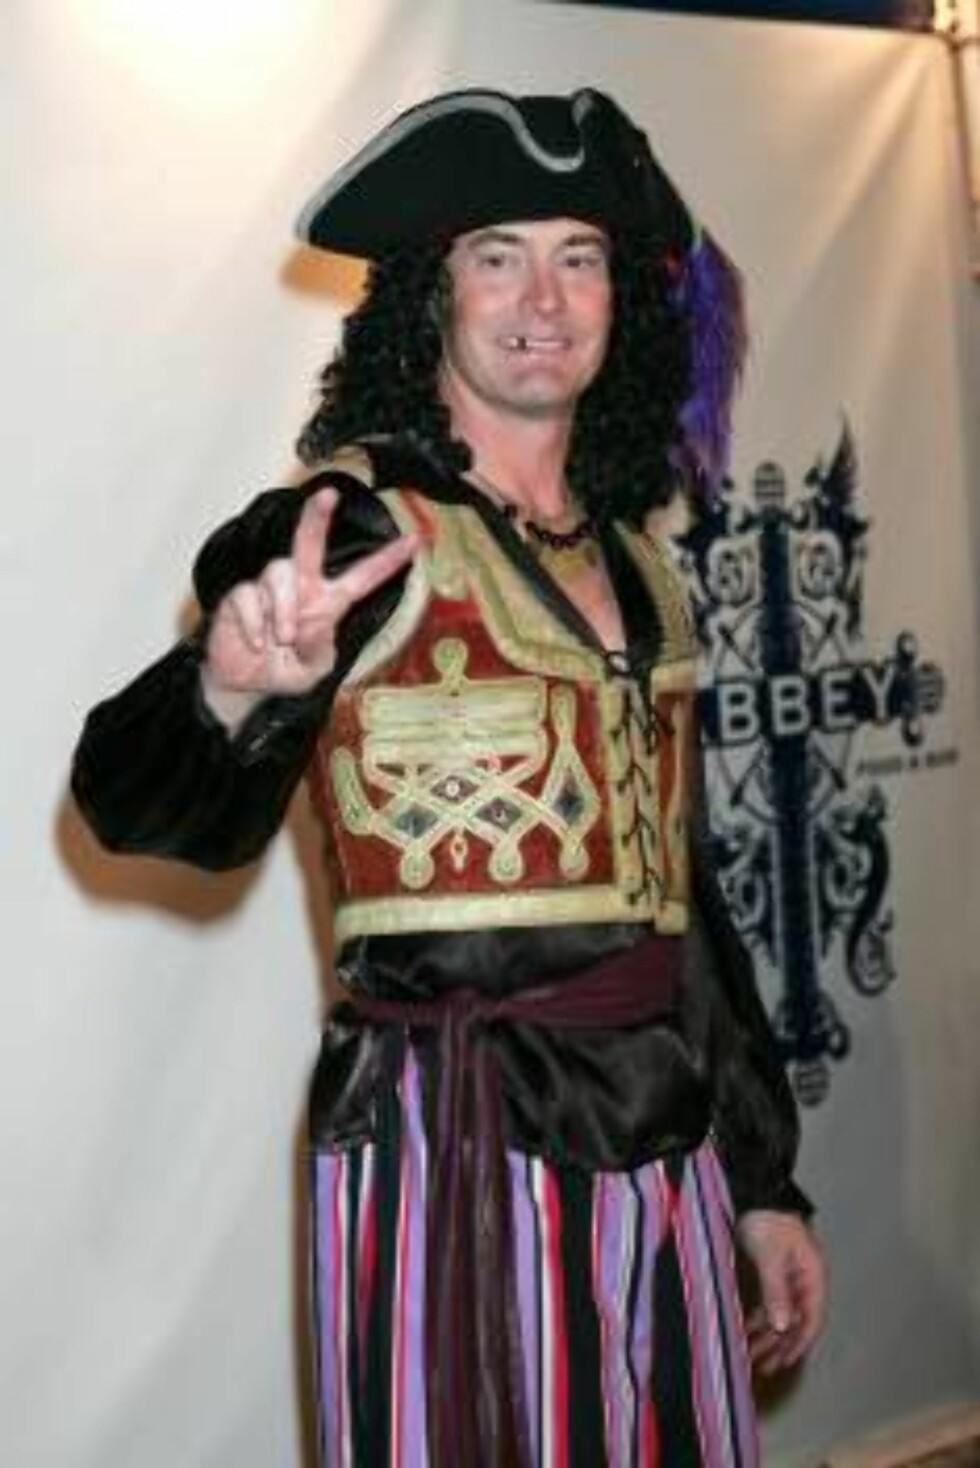 LOS ANGELES 2006-10-31.  Kyle MacLachlan at the 7th Annual Heidi Klum Halloween Party, held at Privilege, Los Angeles.  Photo: Evans Ward/jpistudios Code: 4036  COPYRIGHT STELLA PICTURES Foto: Stella Pictures